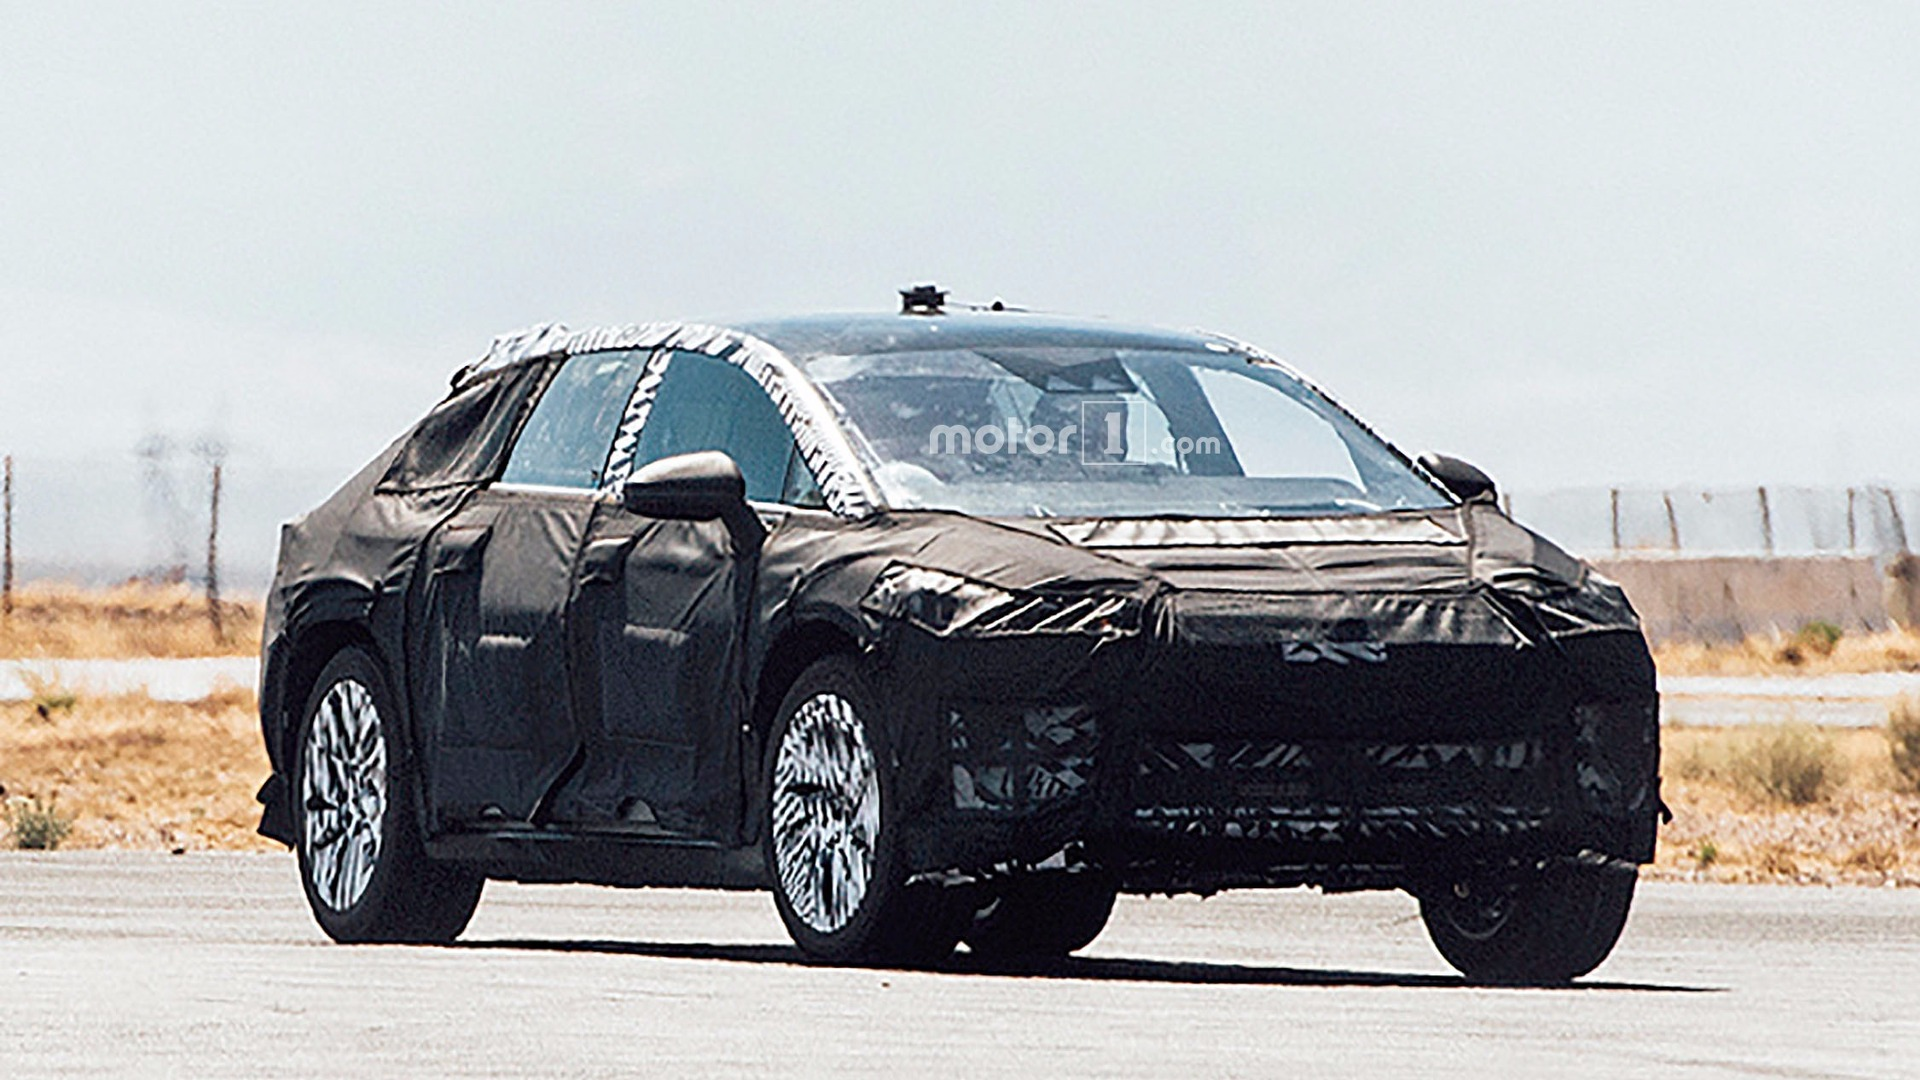 Faraday Future electric crossover spied testing in the desert